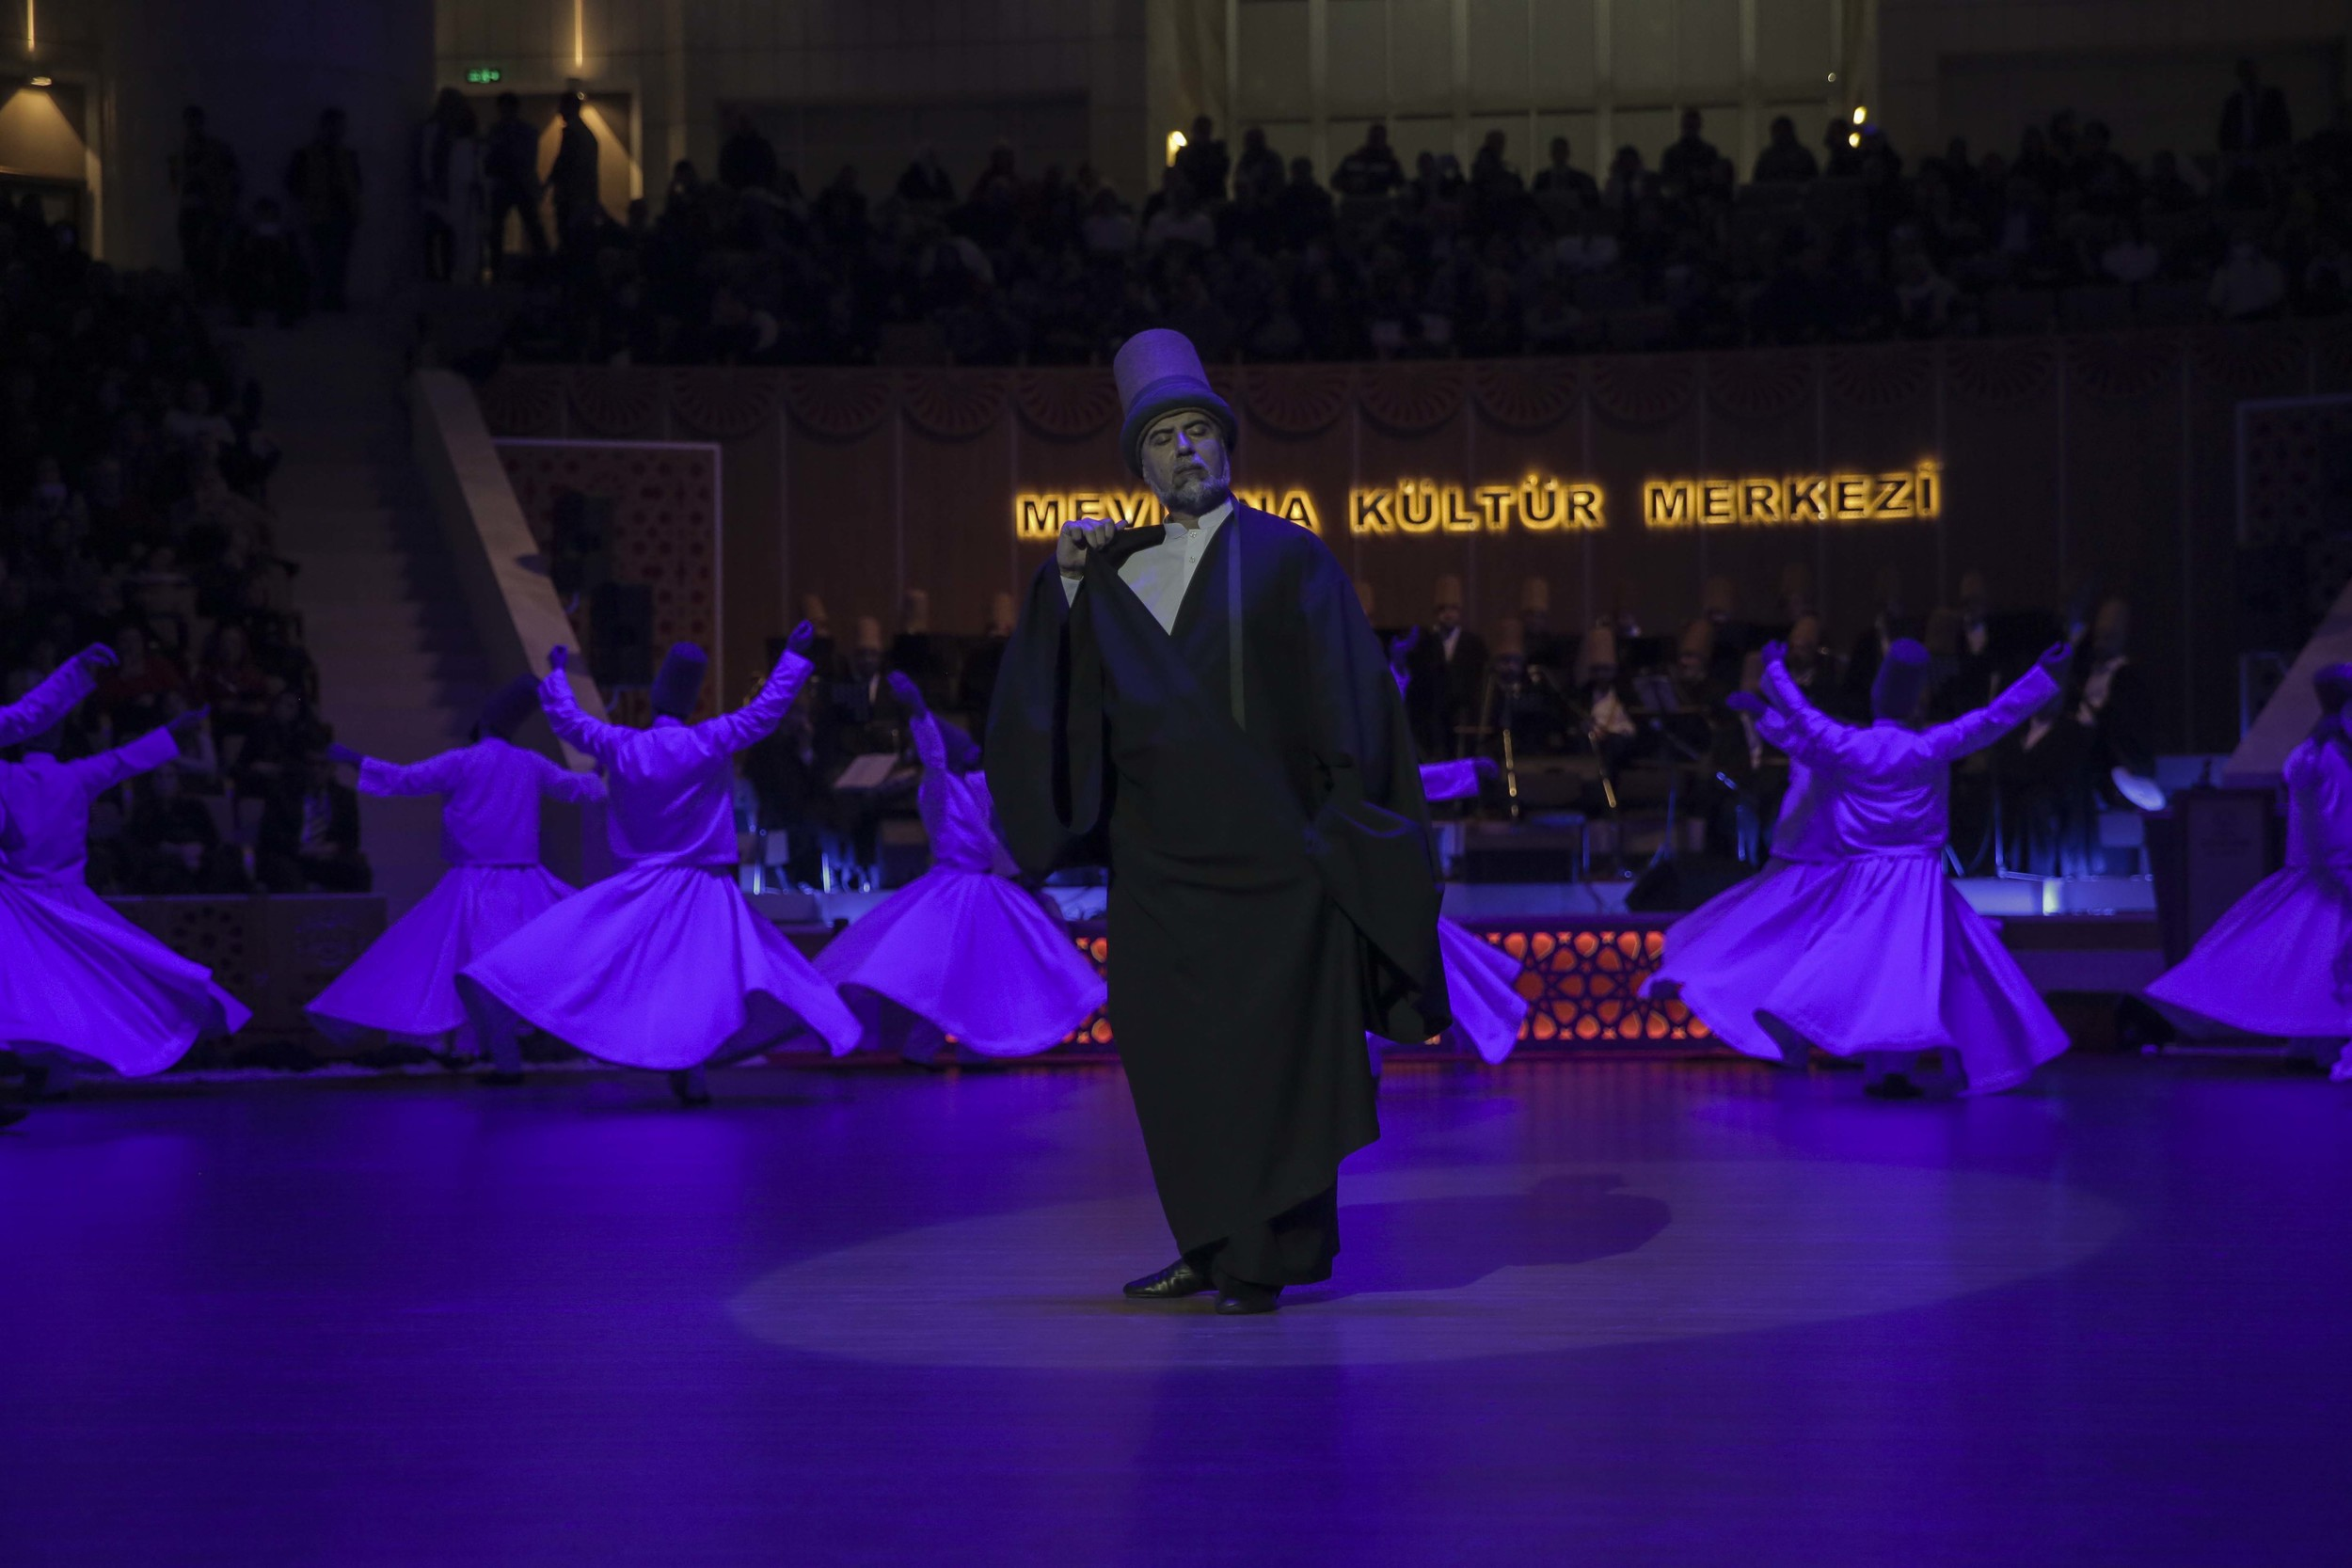 Fahri Ozcakil, the Dede – or head –of the whirling Dervishes and father of Mithat, gently turning in the centre of the other whirling dervishes